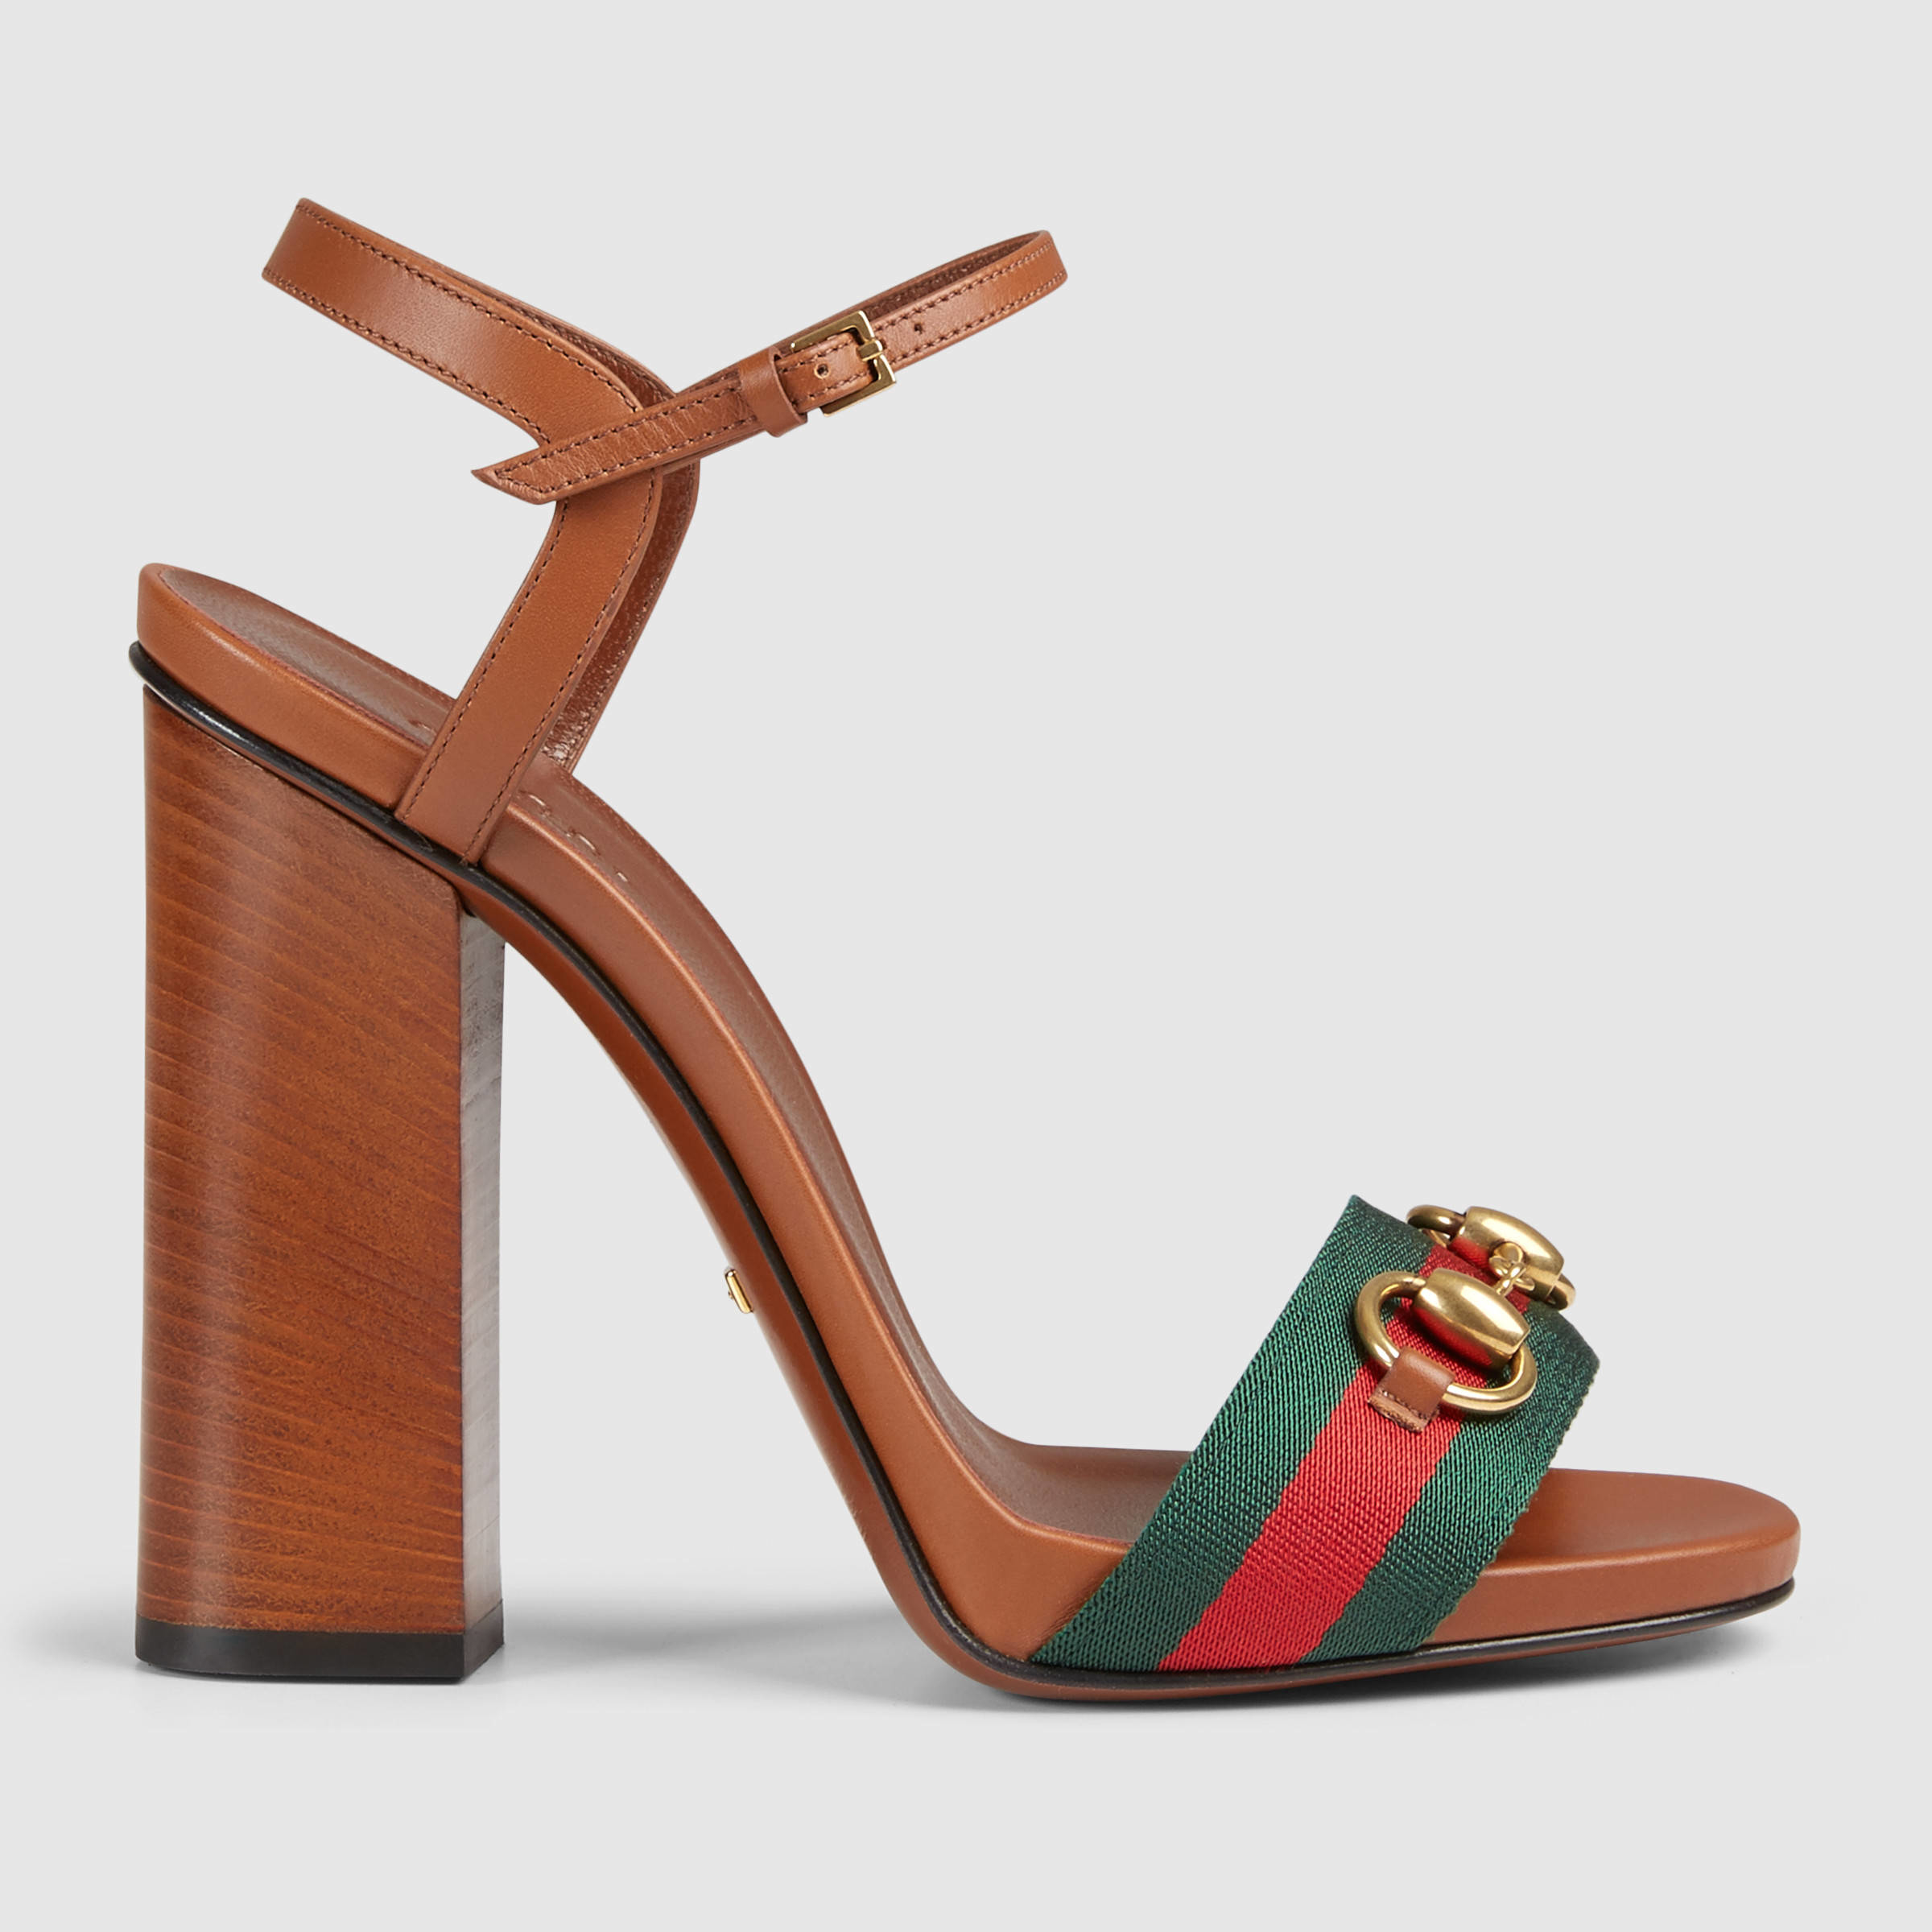 7579d1cf7 Gucci Leather T-strap Sandal in Brown - Lyst